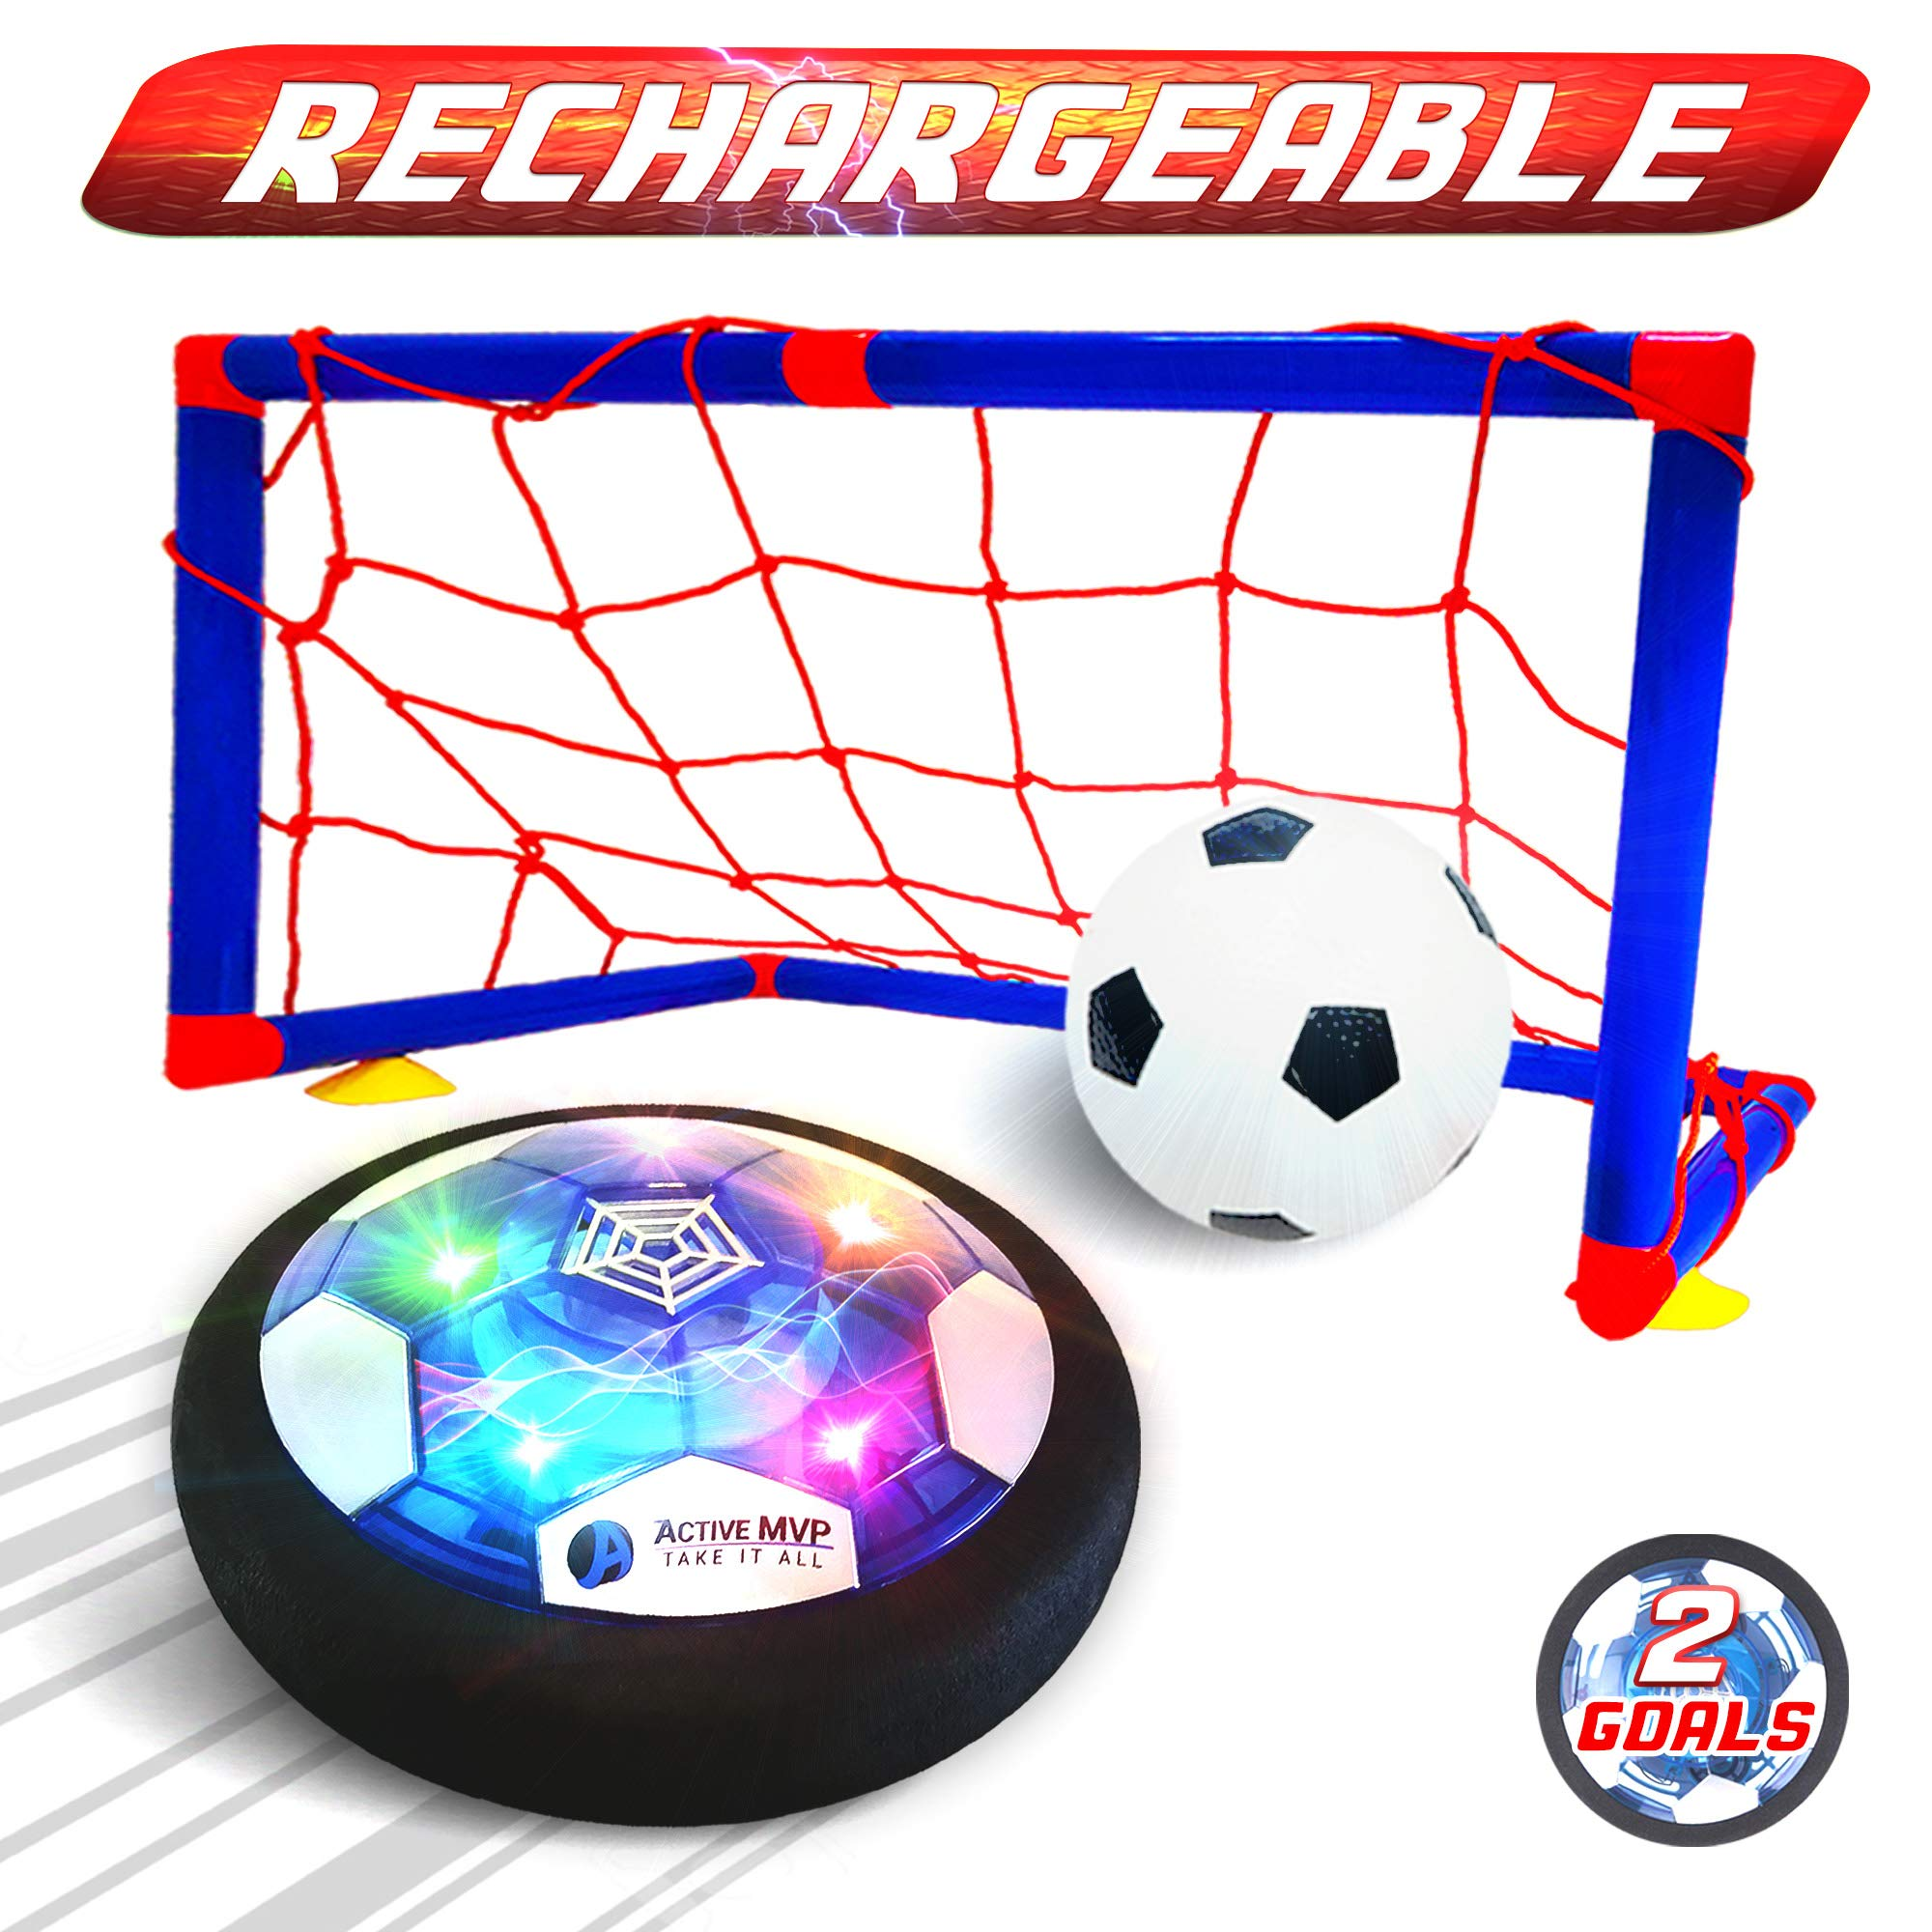 ActiveMVP Kids Toys Rechargeable Hover Soccer Ball Set with 2 Goals, Indoor LED Light Up Fun Air Soccer Game - No Battery Needed, Strong Improved ABS Plastic Quality - Boys Girls Age 3 4 5 6 7 8 9 11+ by ActiveMVP